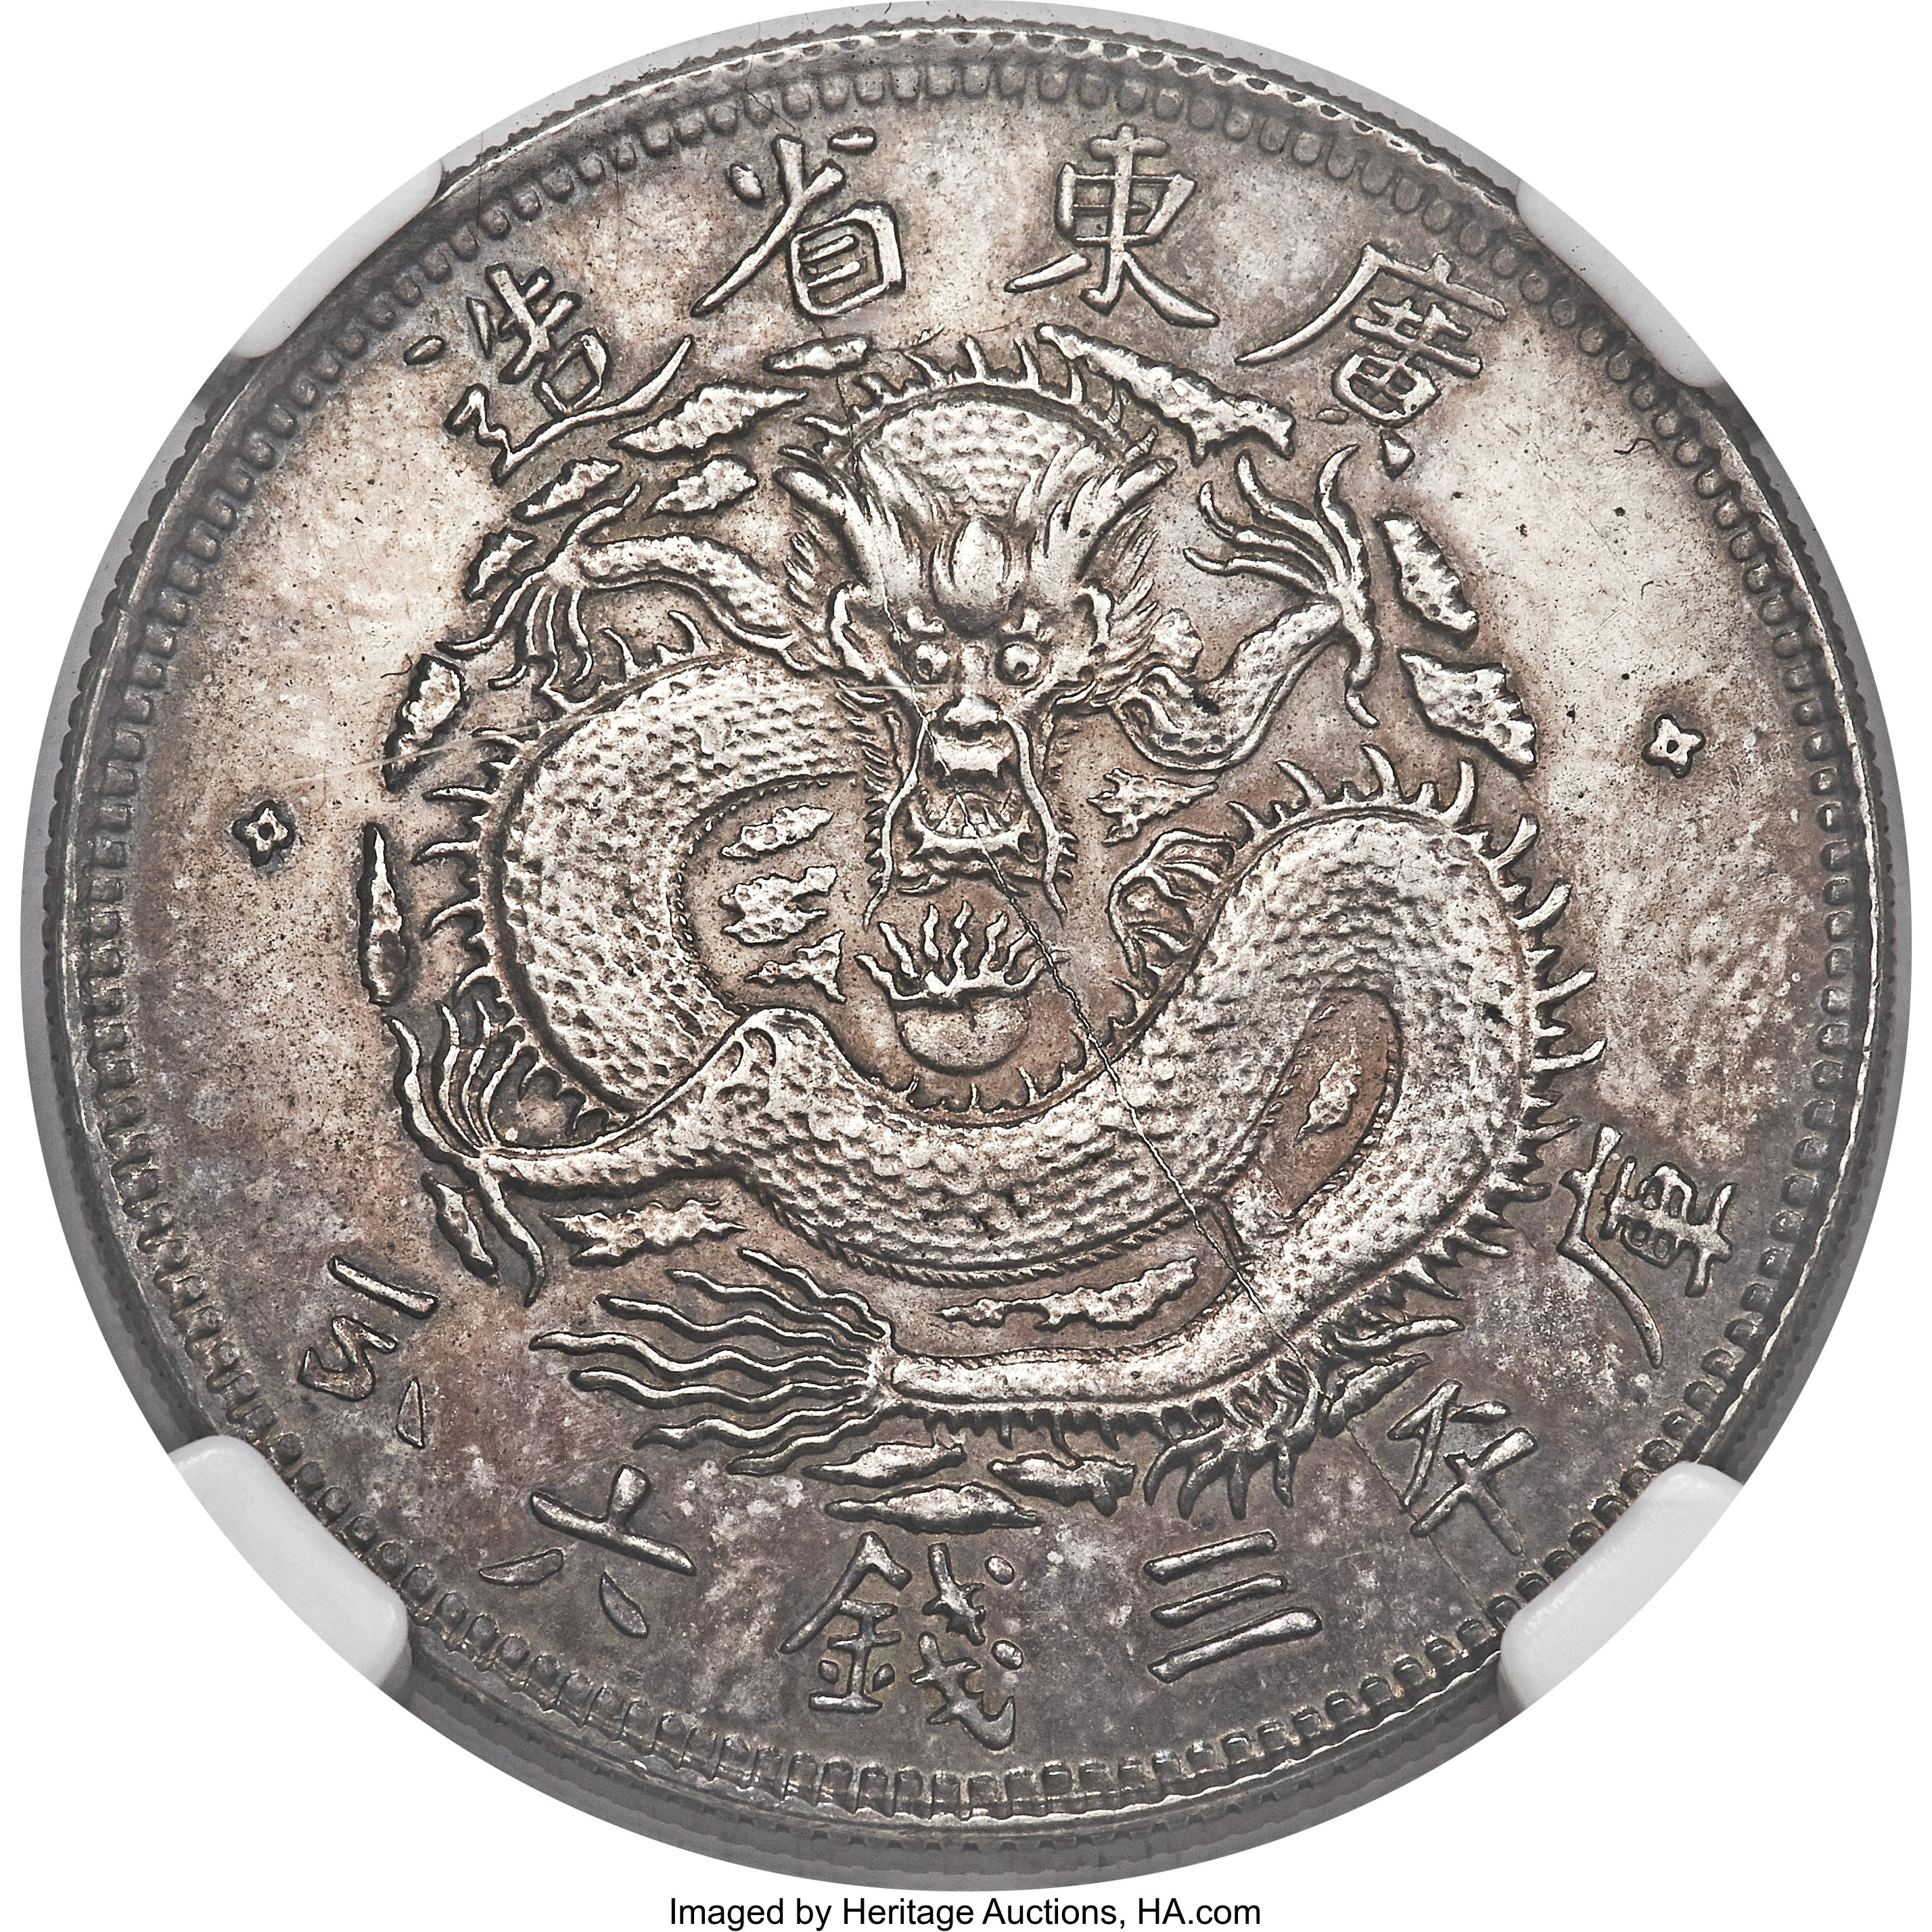 thumbnail image for Vintage Chinese Pattern Coins, Currency Highlight Heritage Auctions' HKINF Offerings Dec. 6-7